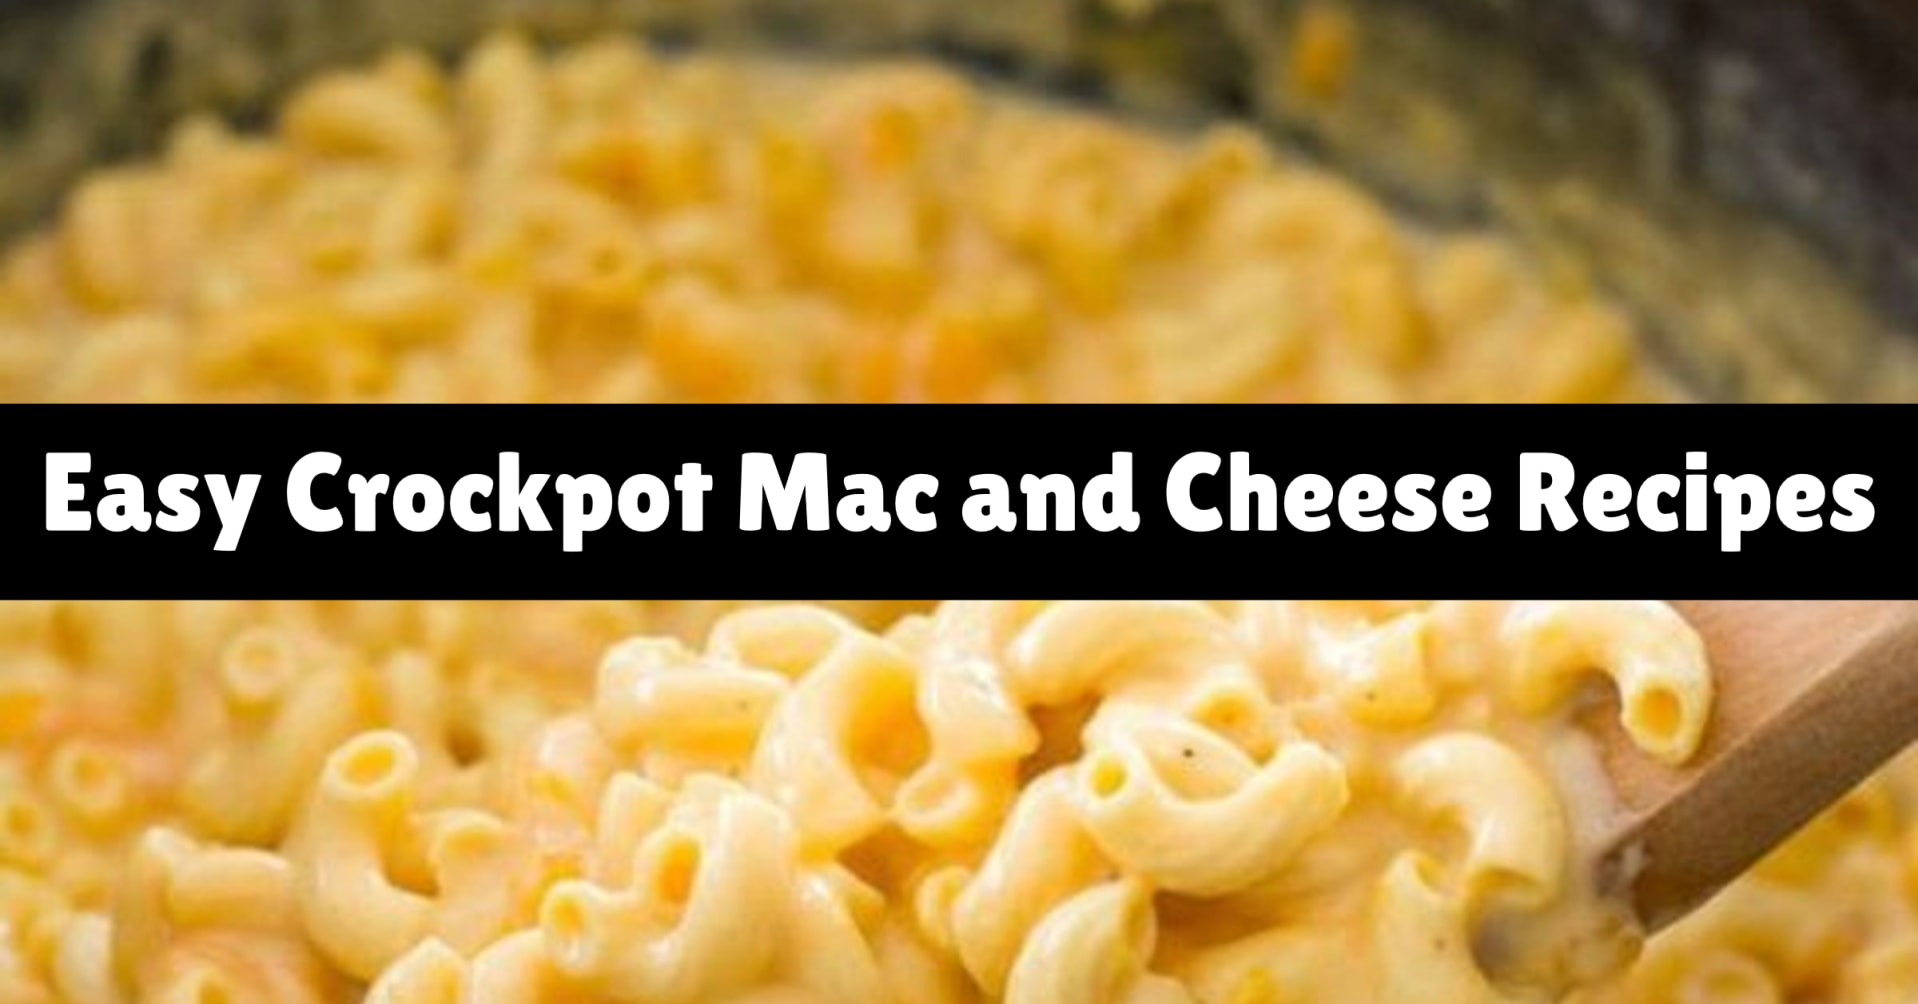 Crock pot mac and cheese with velveeta, like paula deen, creamy crockpot mac and cheese and more easy slow cooker macaroni and cheese recipes with and without evaproated milk - southern crock pot mac and cheese recipes too!